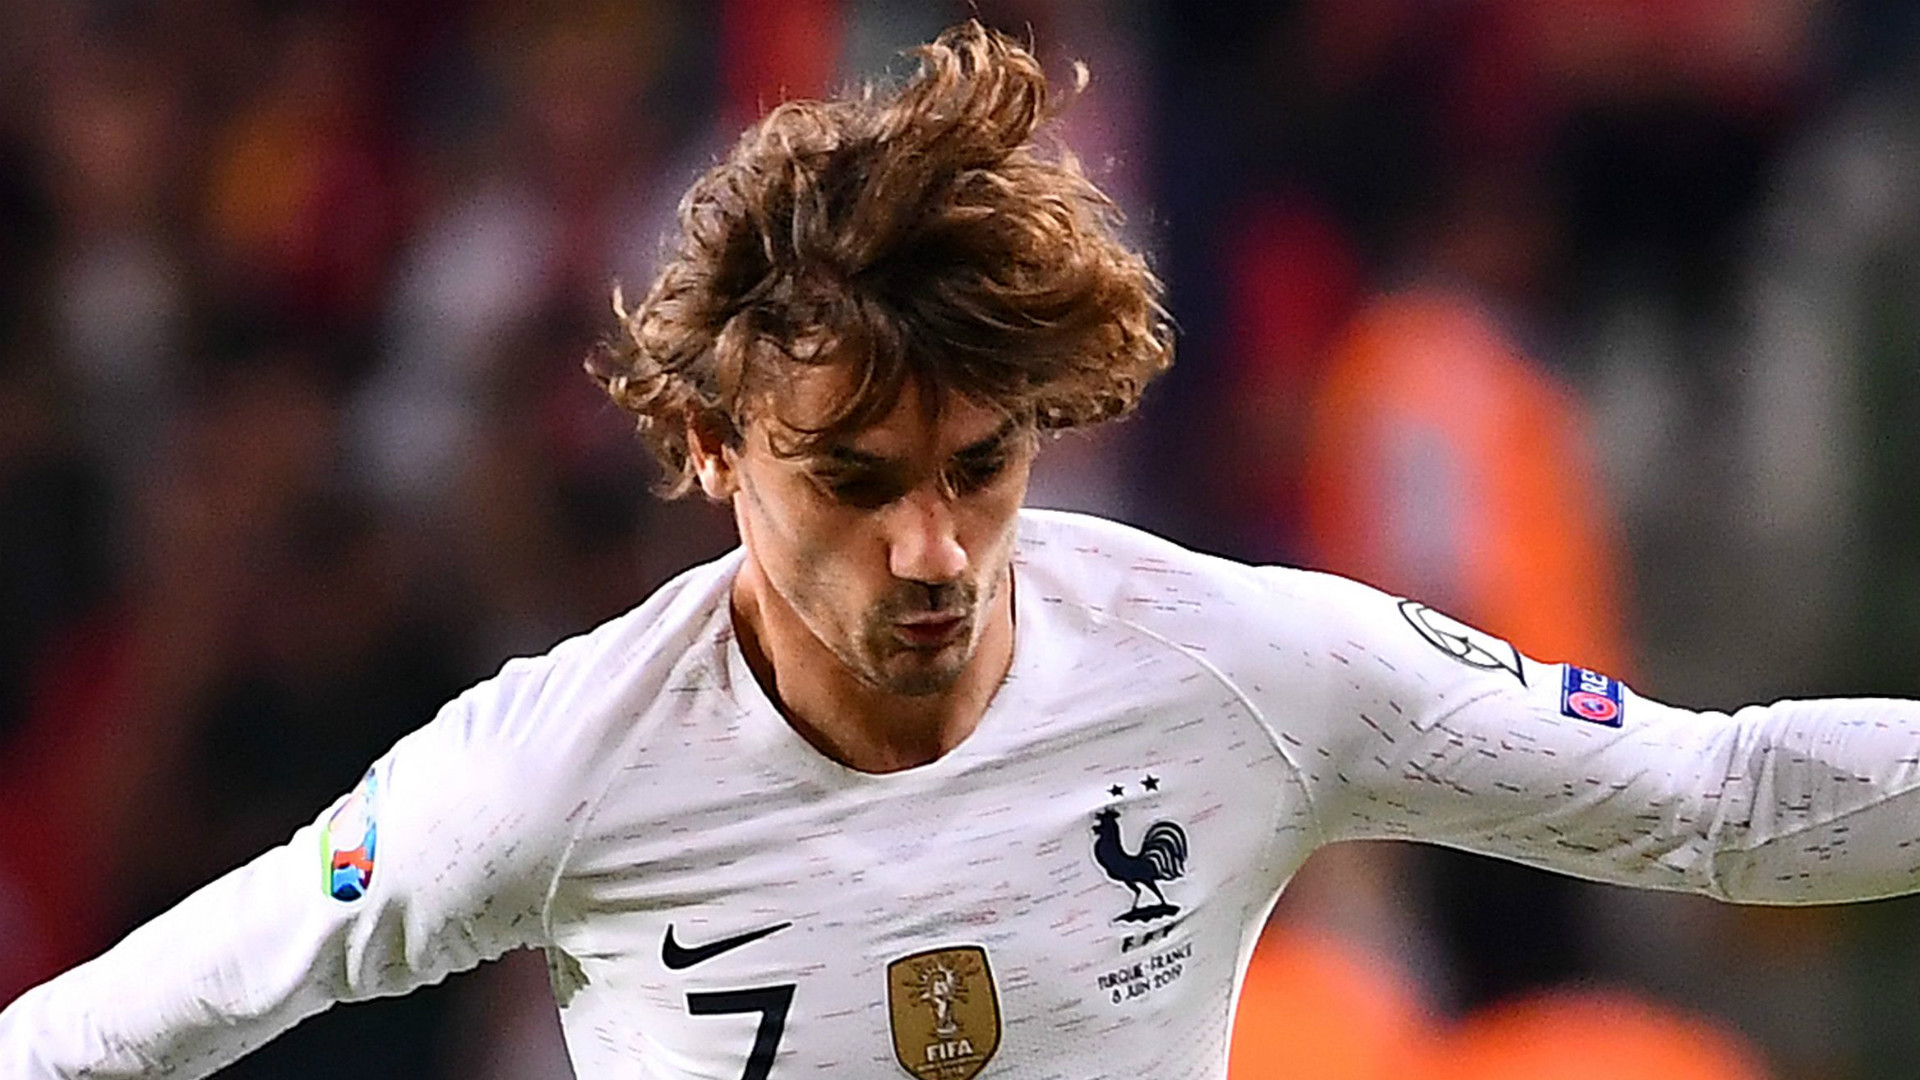 Griezmann asks for patience and hints at move away from La Liga amid PSG links